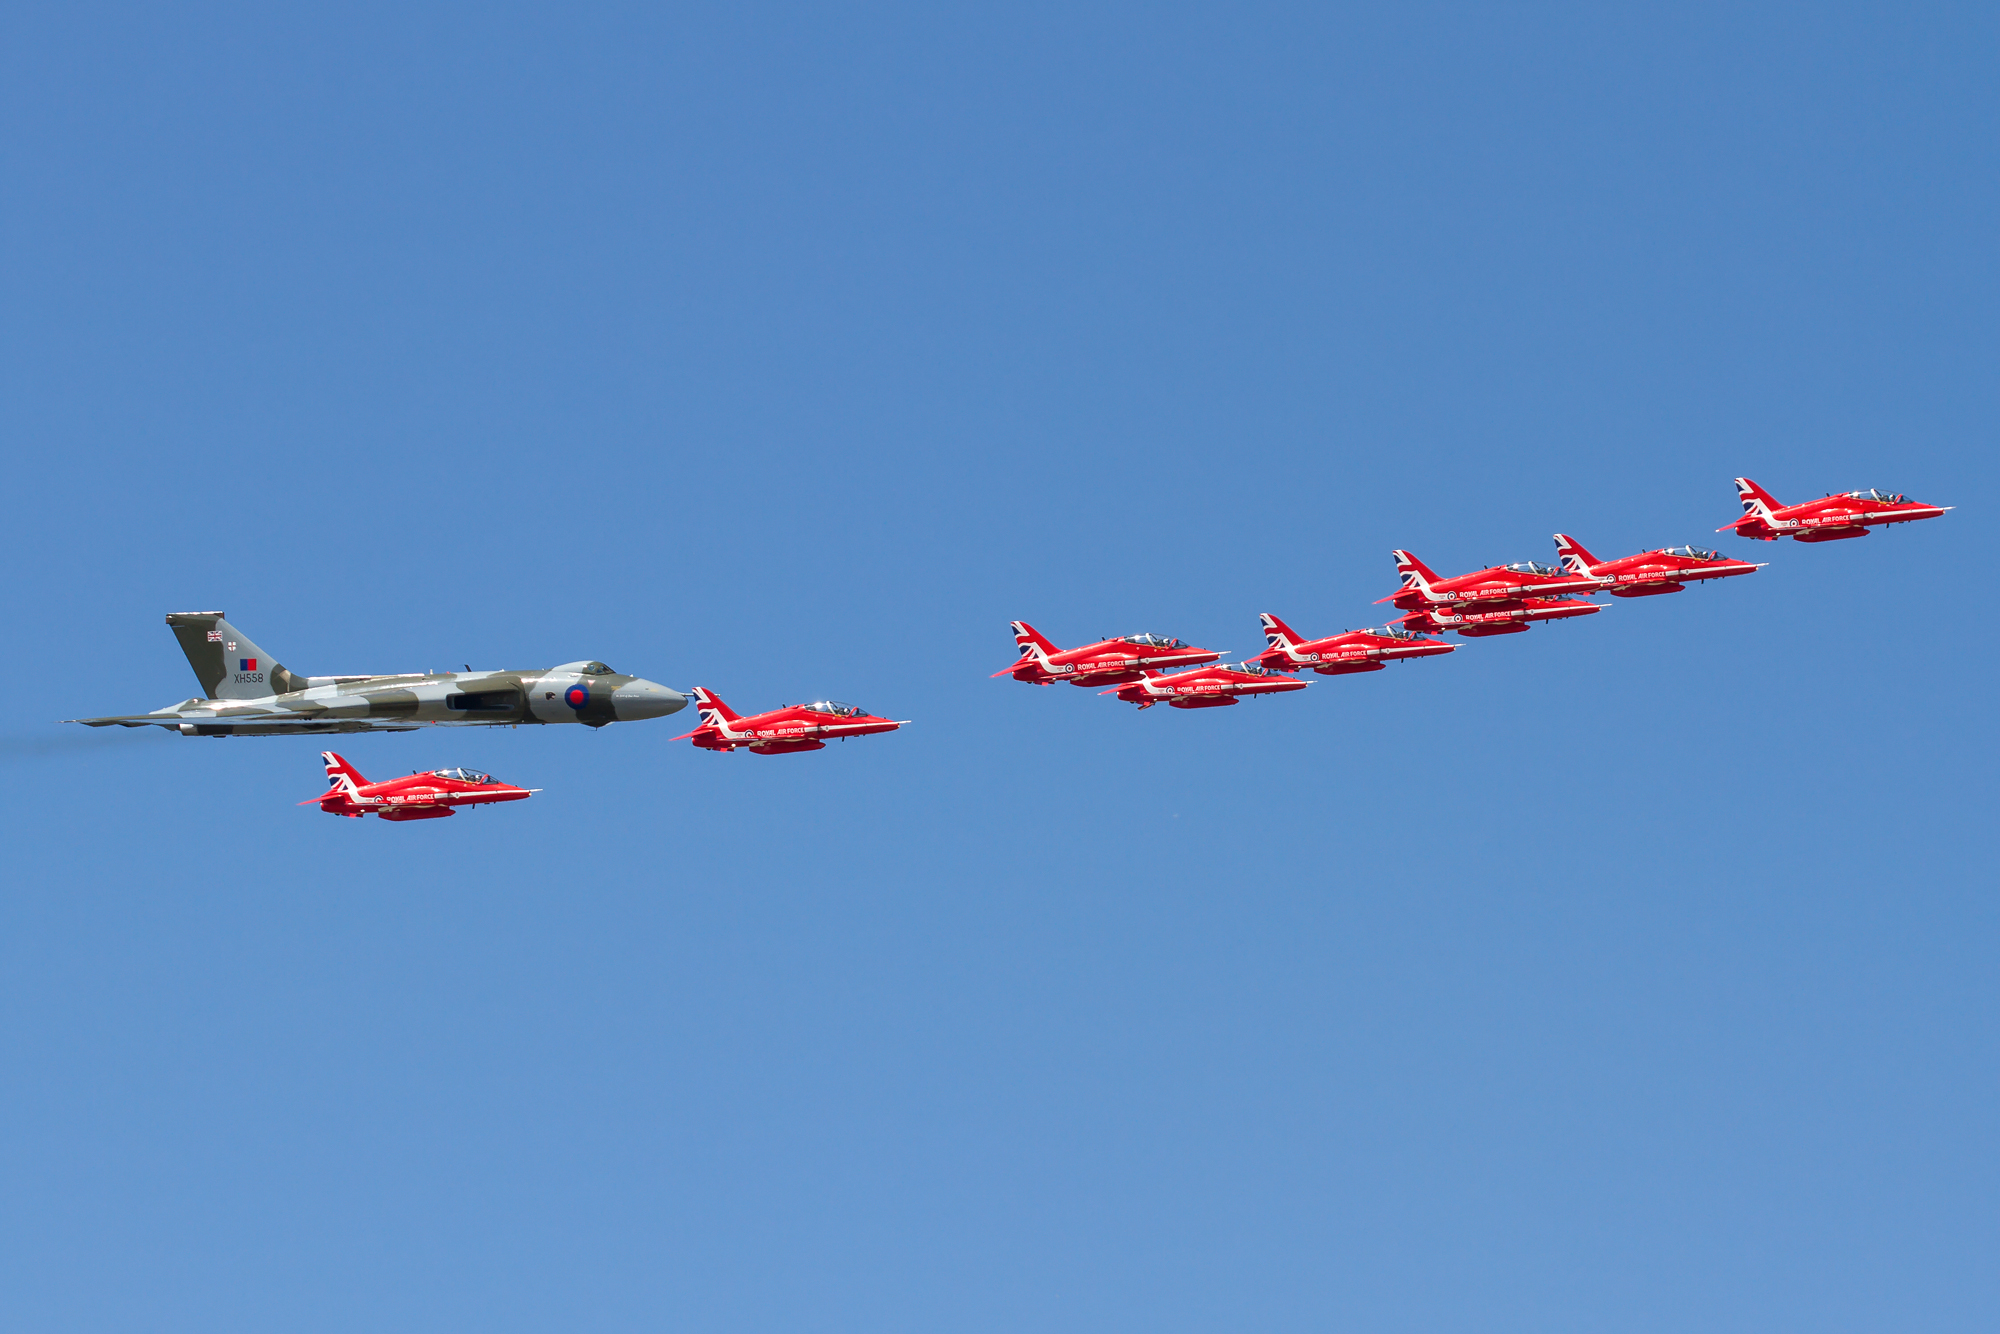 Vulcan & Red Arrows Formation